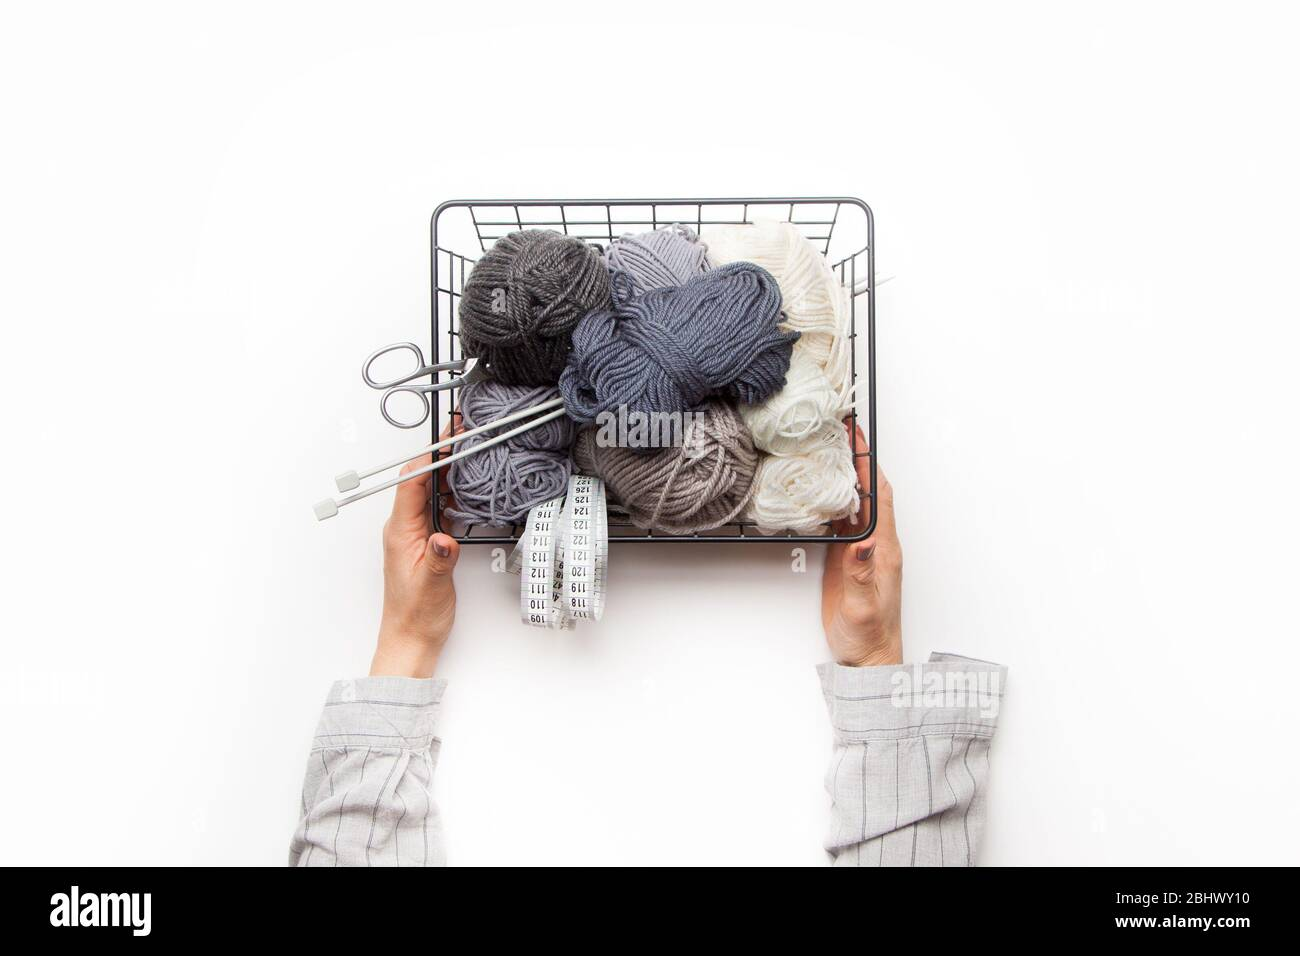 Female hands hold a black metal basket with yarn for knitting gray and white. Stock Photo